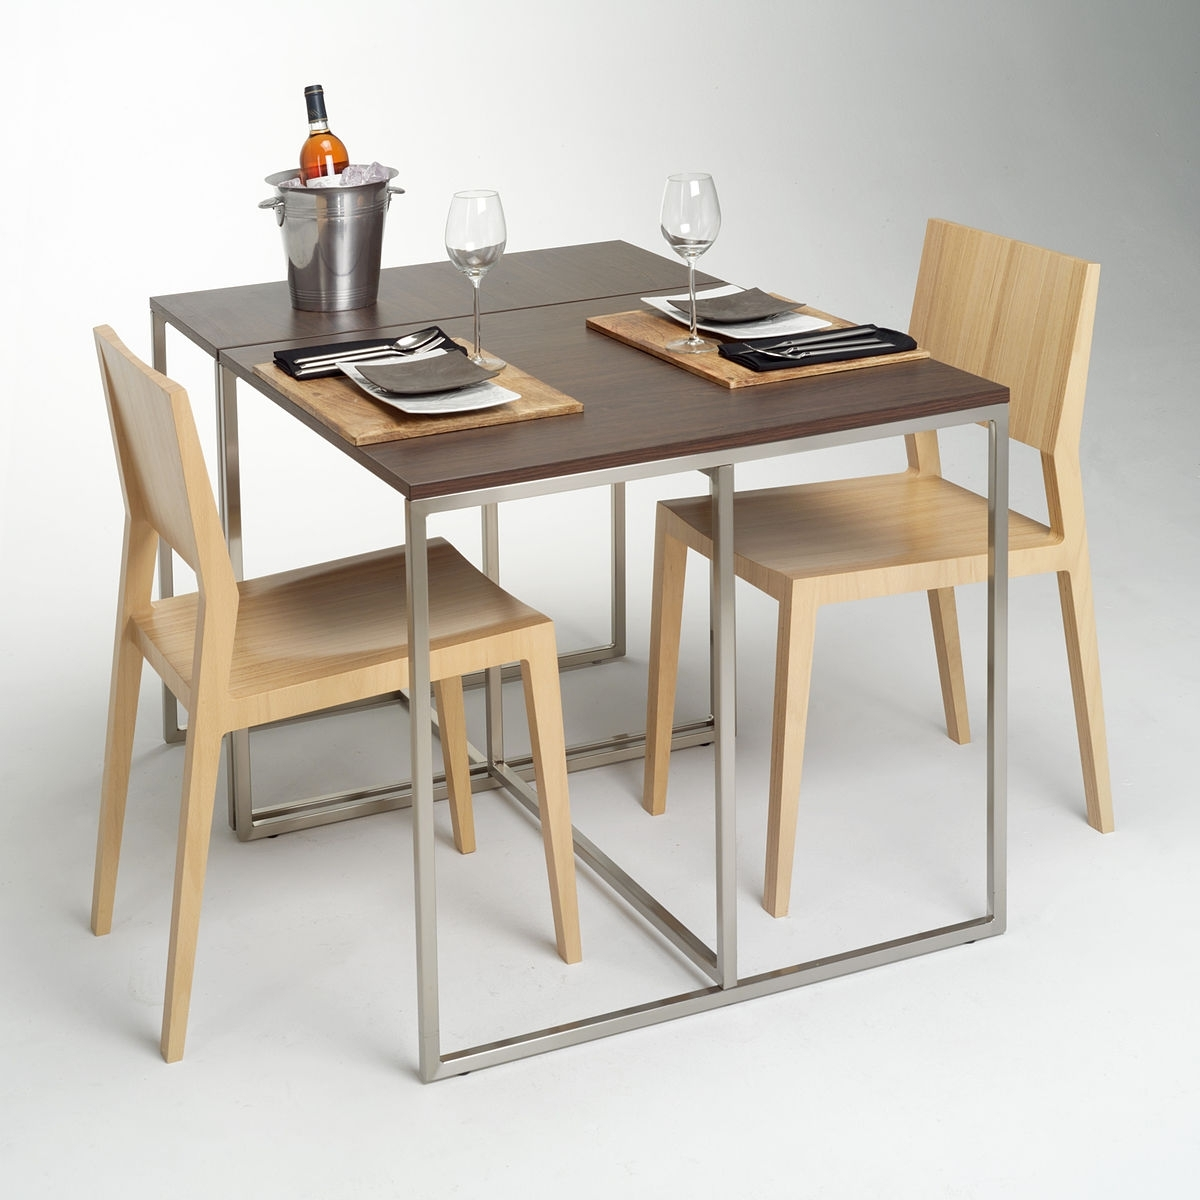 Non Wood Dining Tables Throughout Most Up To Date Furniture – Wikipedia (View 17 of 25)